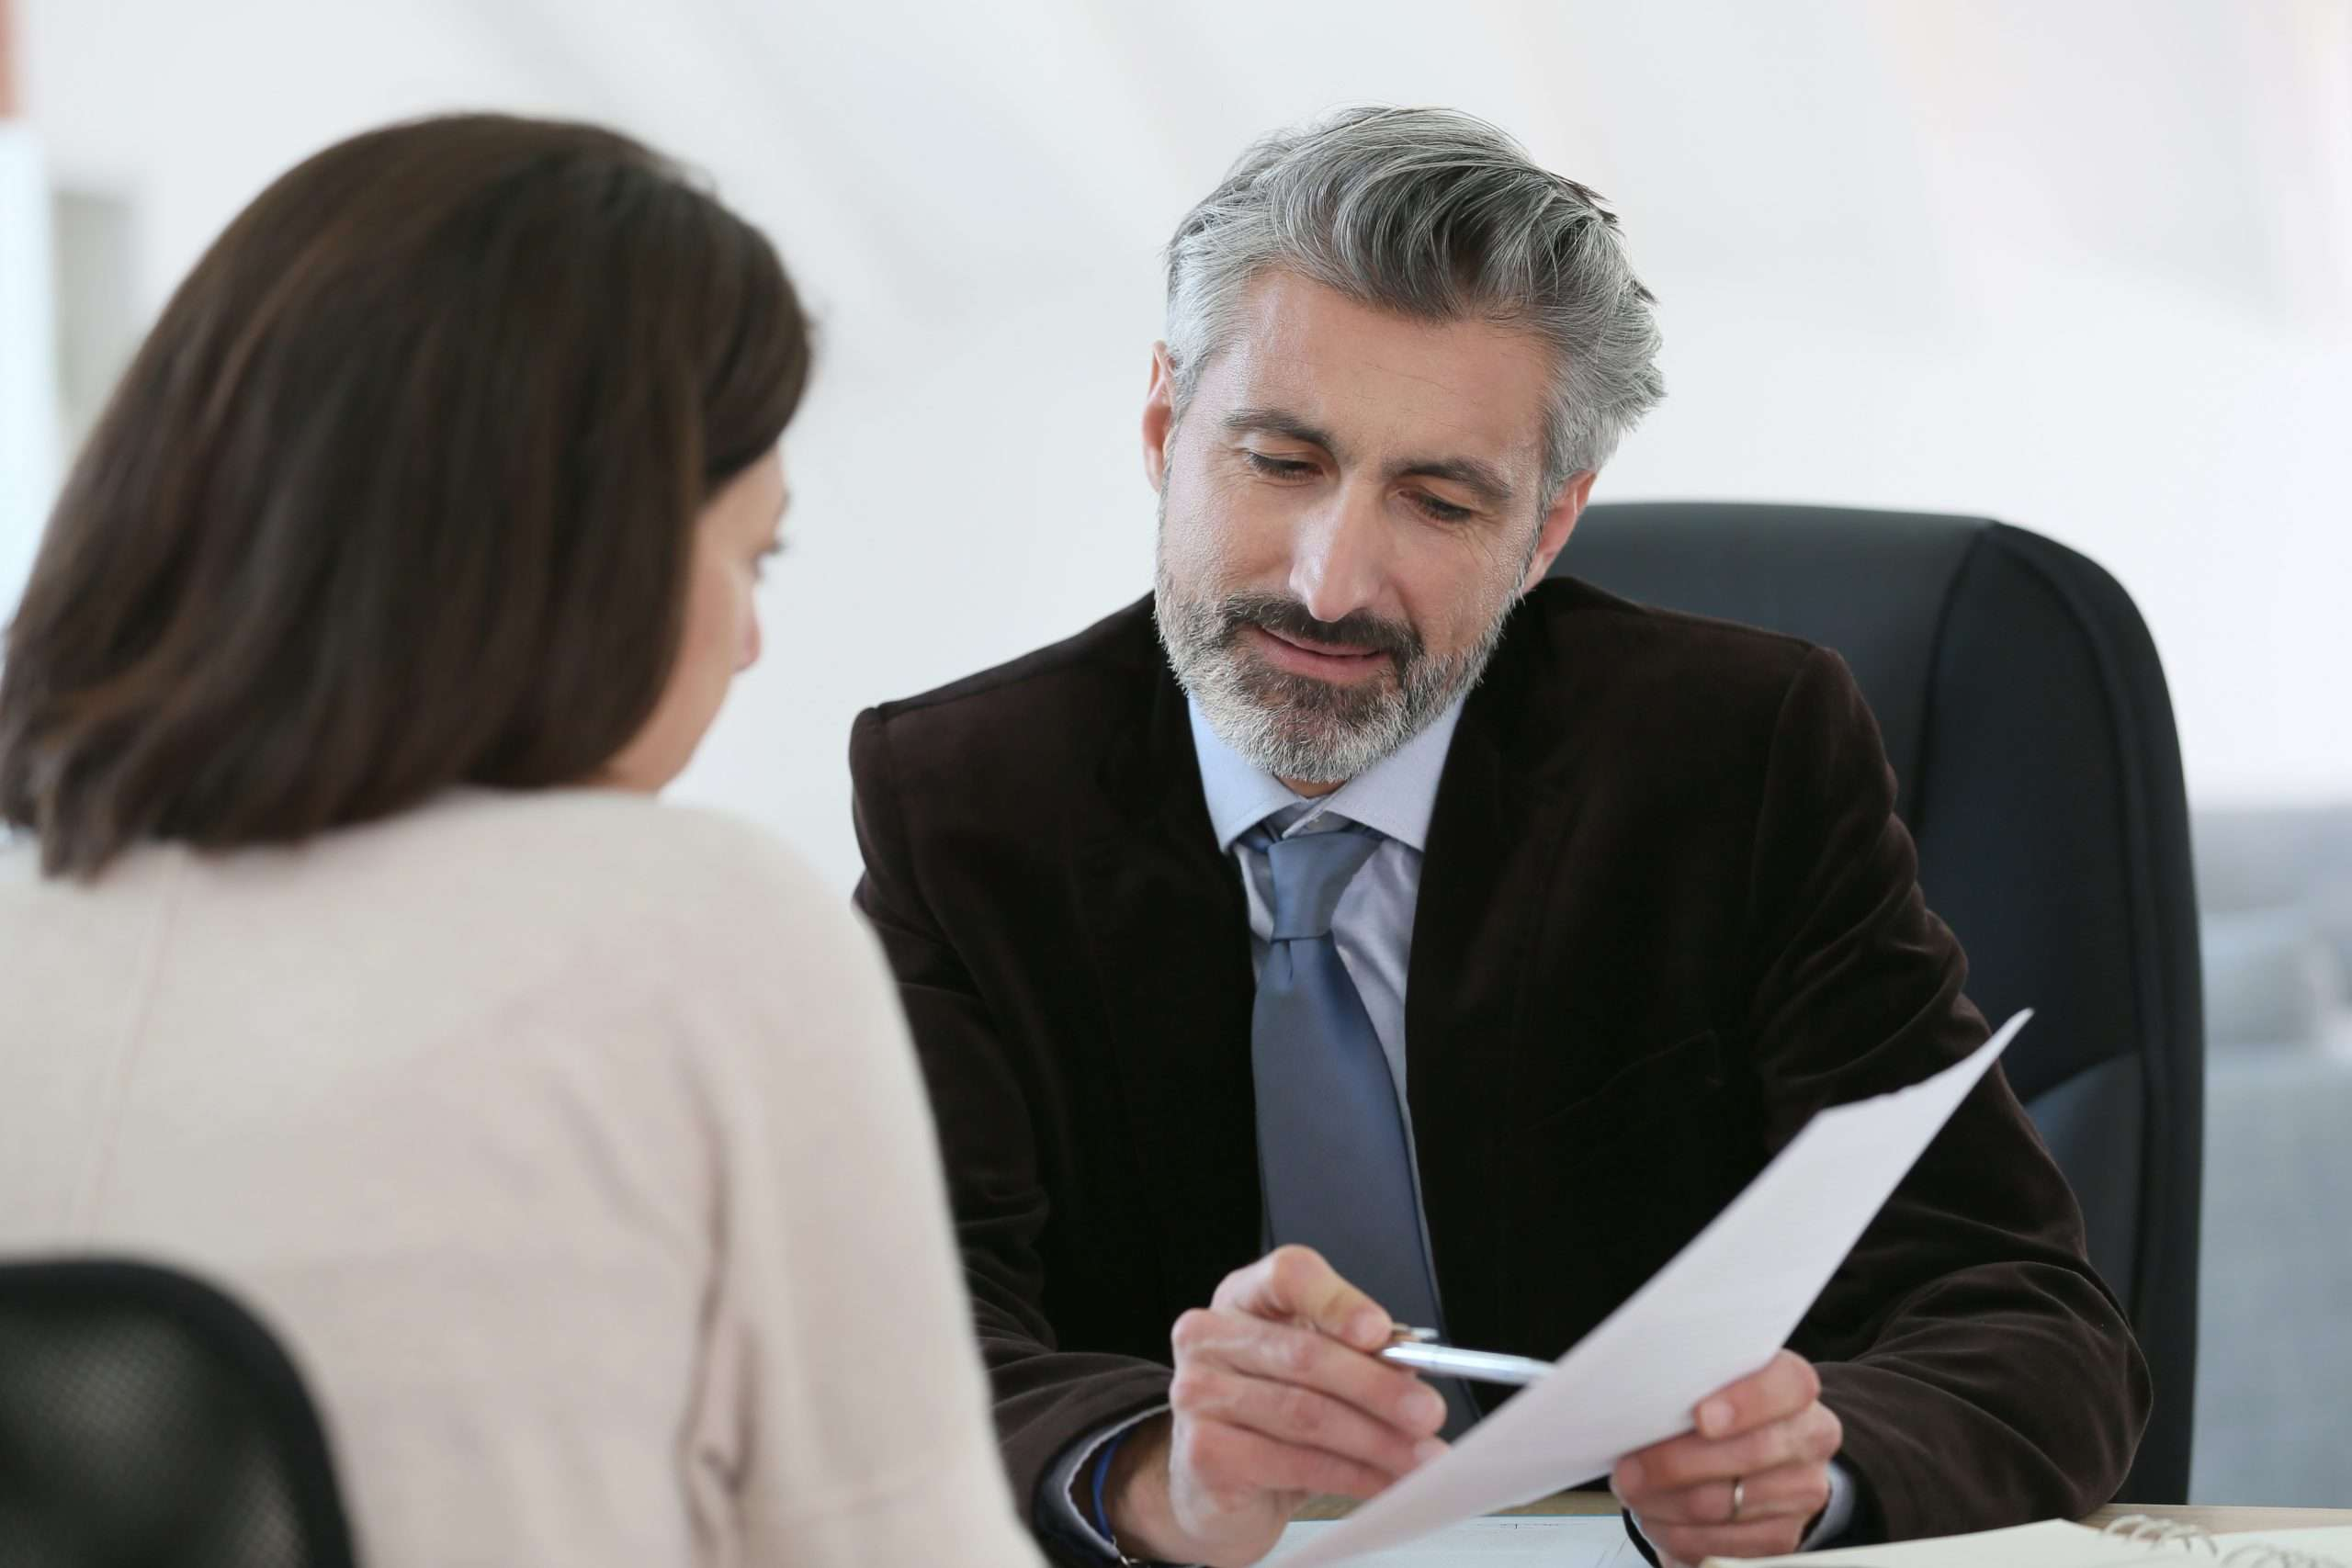 An attorney meets with a small business owner.